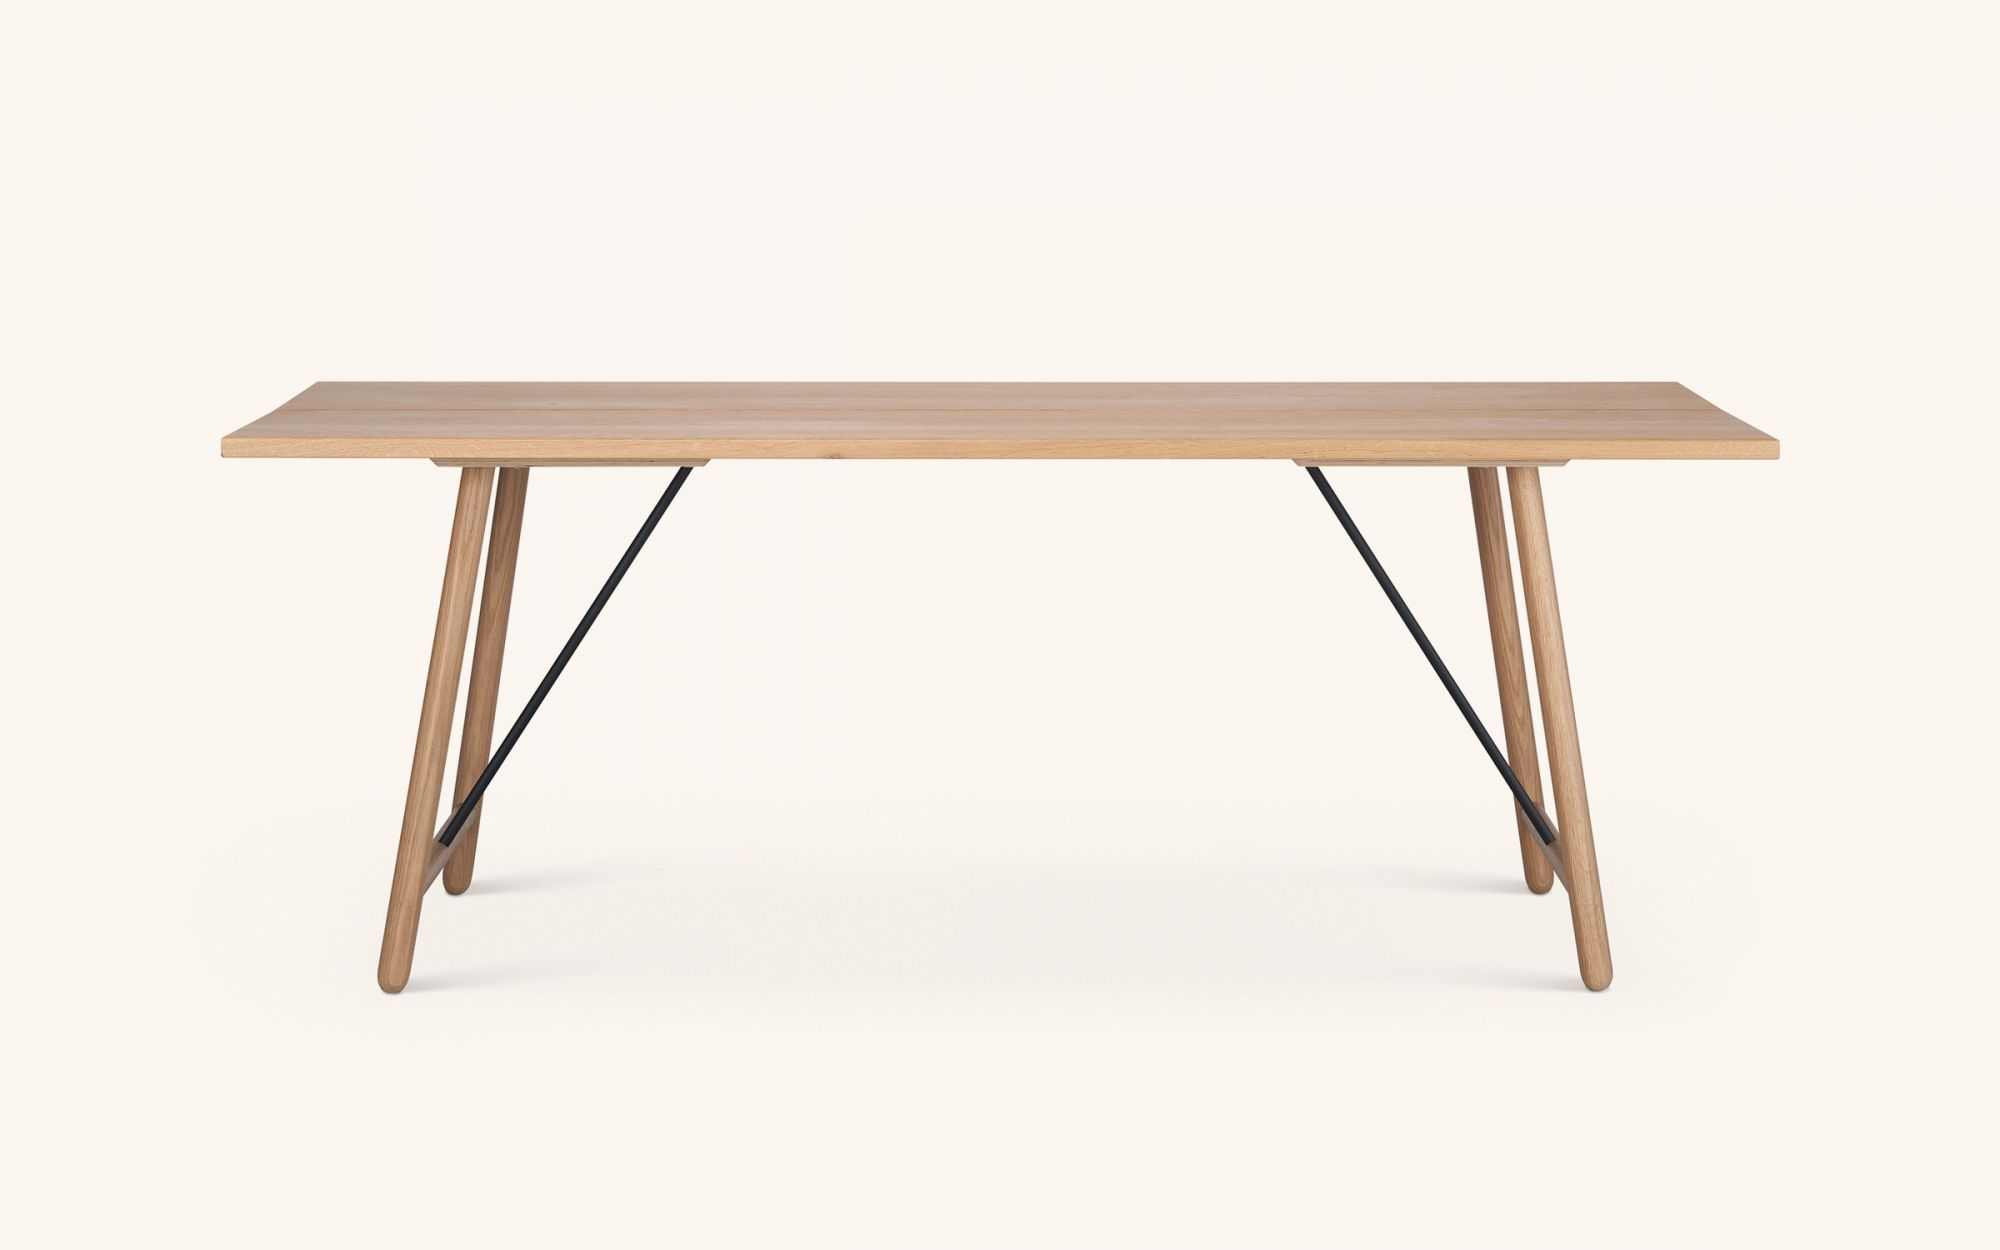 FrontWood-table200_2-front-TapioAnttilaCollection